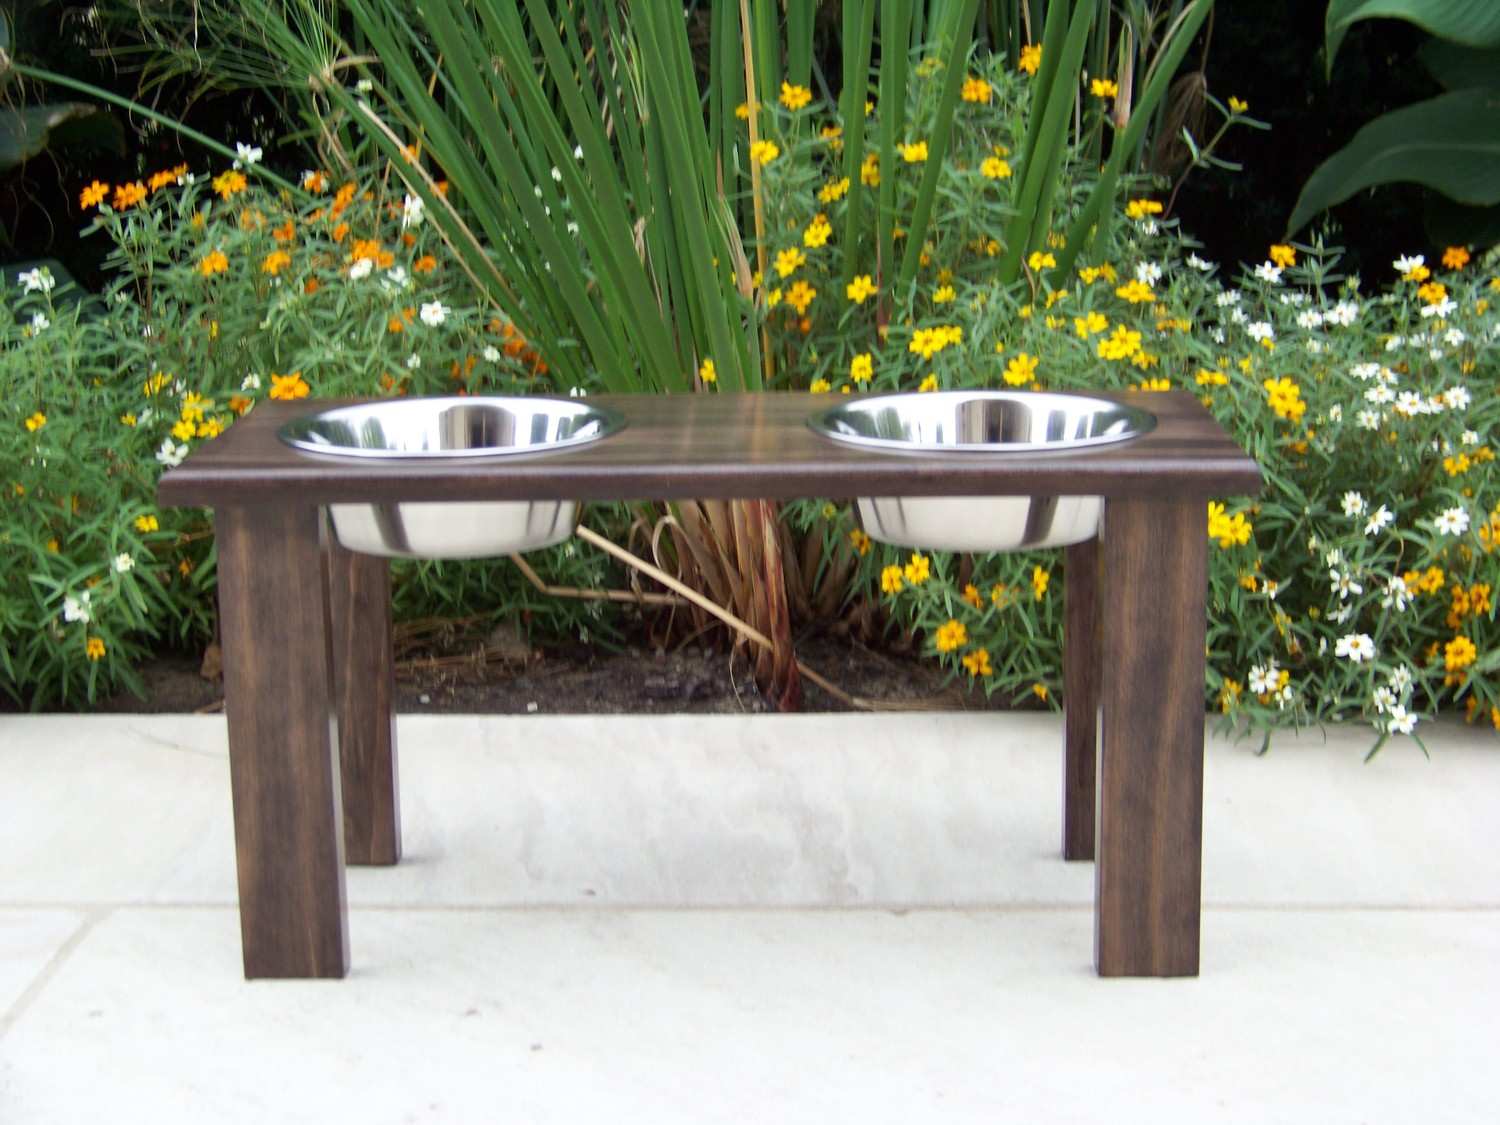 Raised Dog Food Bowls | Elevated Dog Bowls | Dog Food Bowl Holder